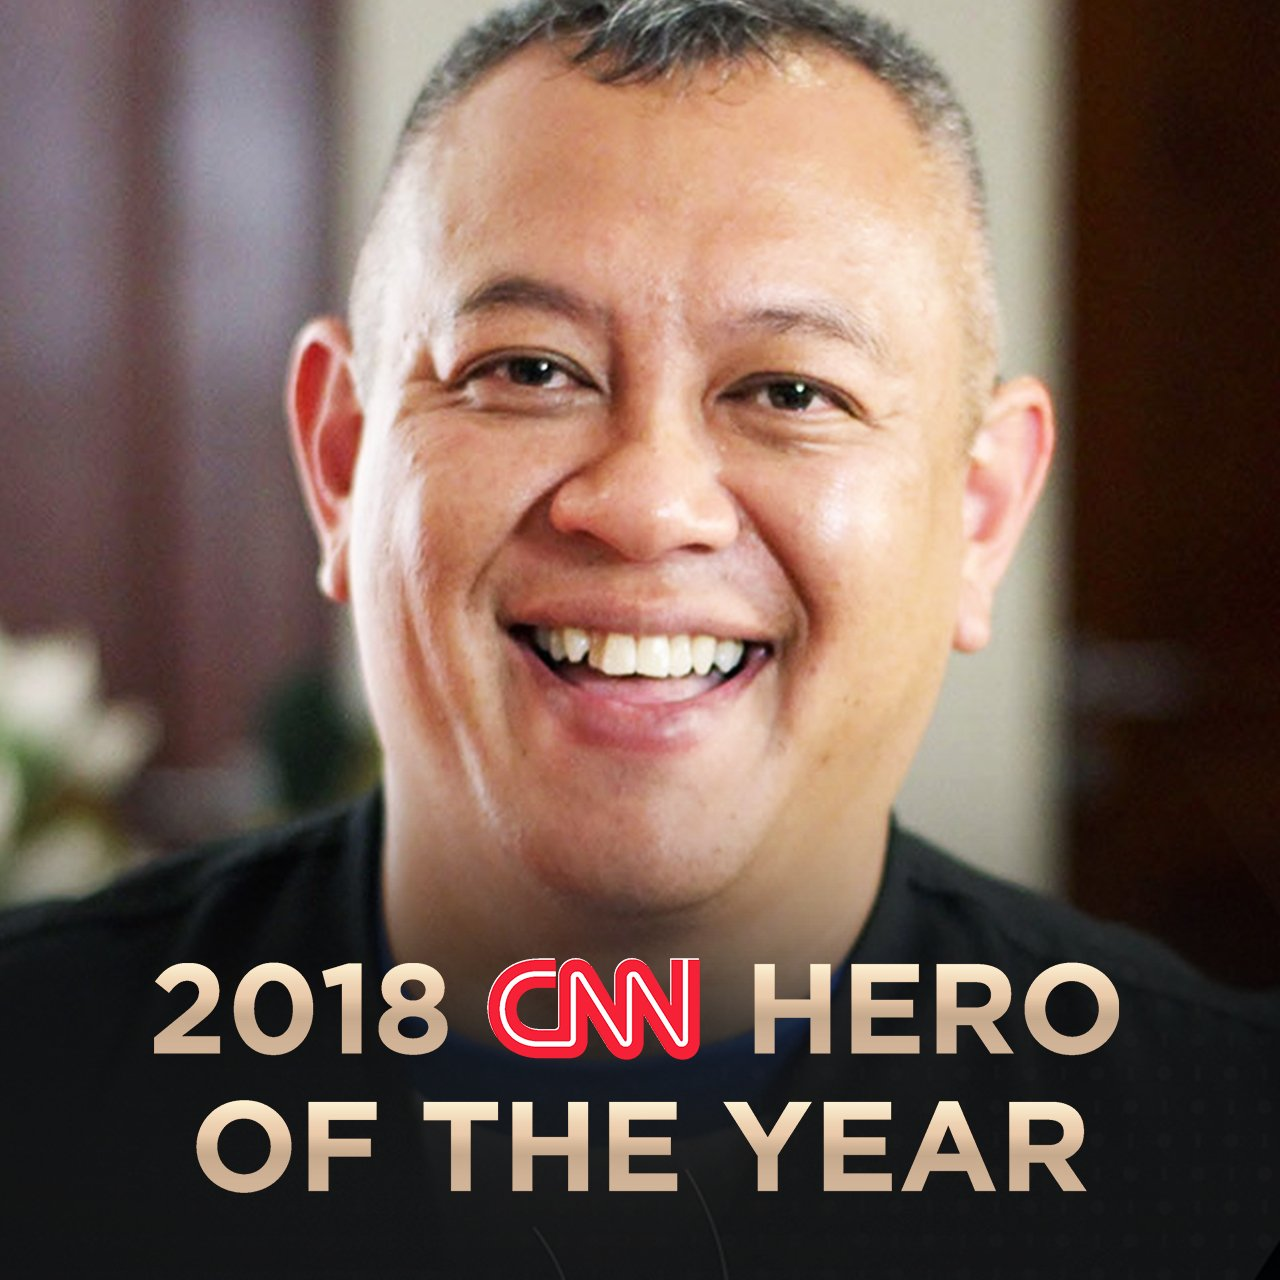 Congratulations to 2018 CNN Hero of the Year Ricardo Pun-Chong.  Learn more about him at https://t.co/MkgzSomt7H https://t.co/Im3wU1sI7g